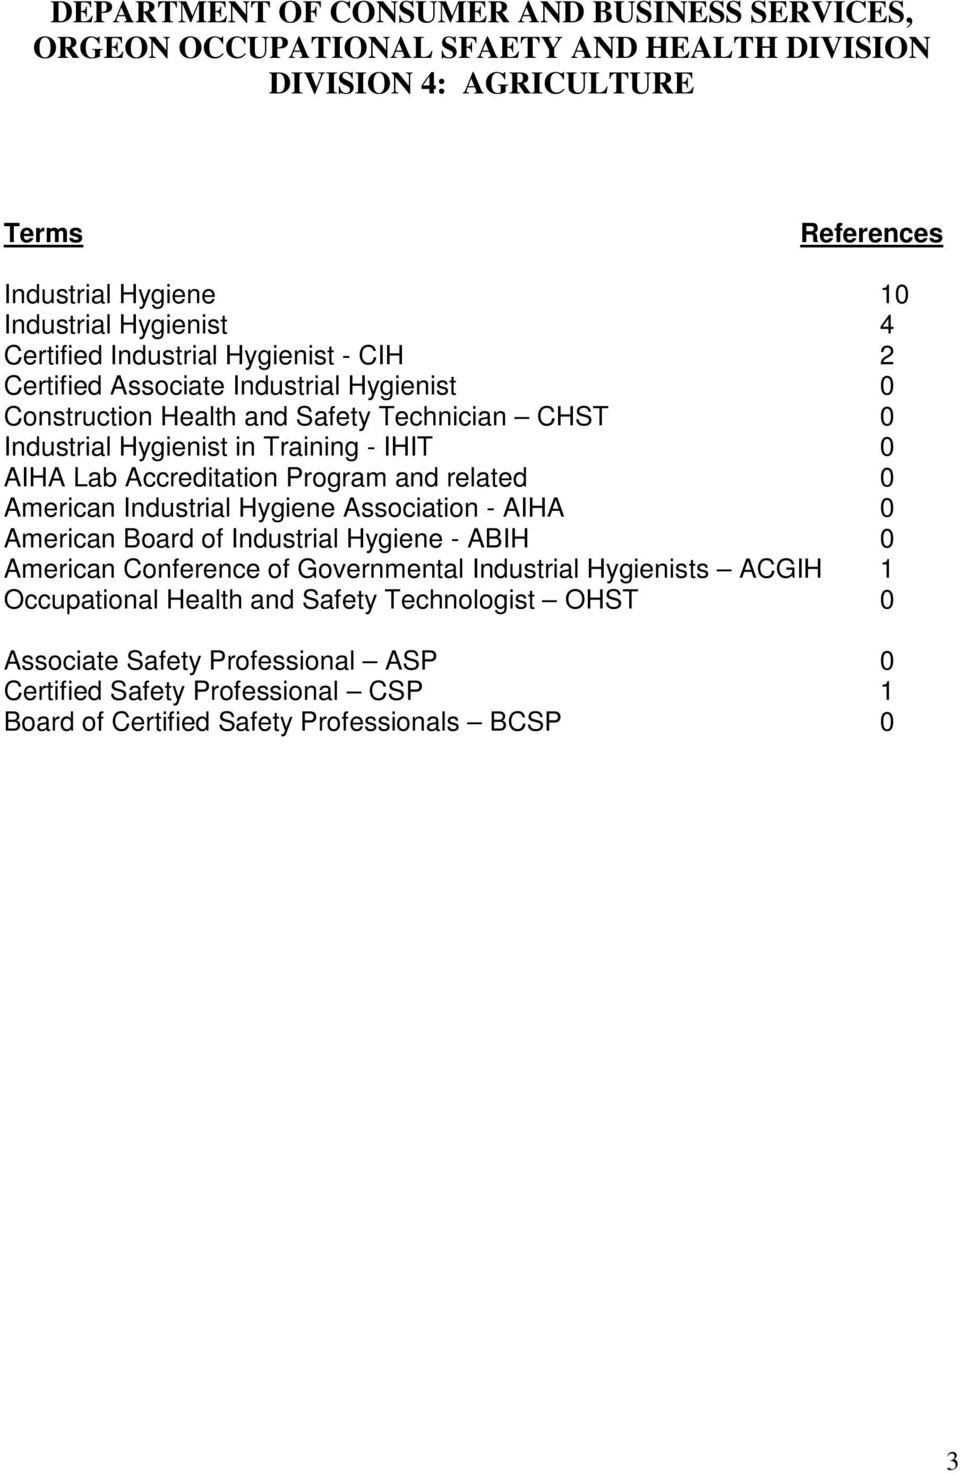 Accreditation Program and related 0 American Industrial Hygiene Association - AIHA 0 American Board of Industrial Hygiene - ABIH 0 American Conference of Governmental Industrial